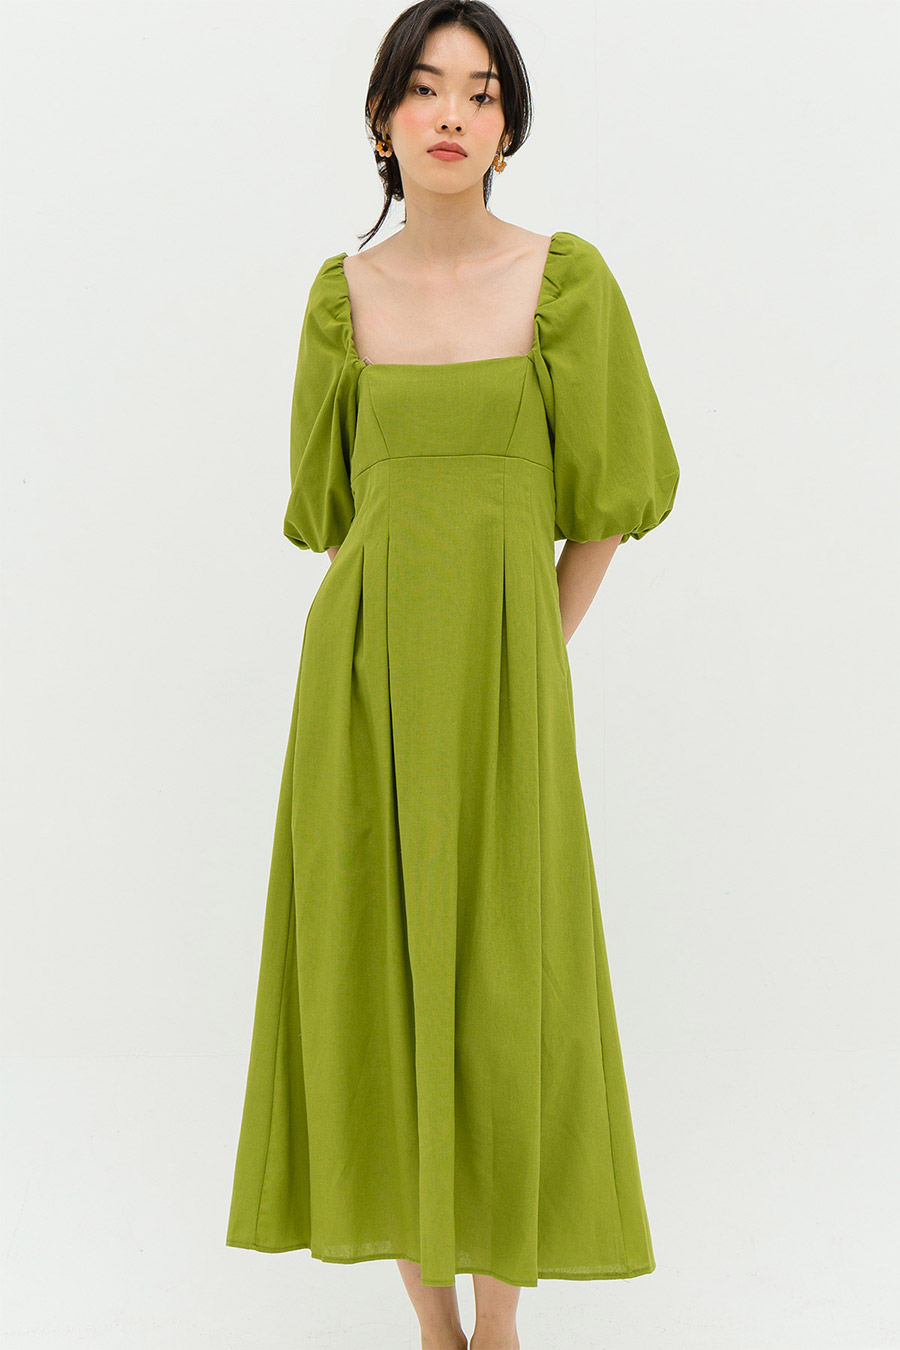 *RESTOCKED* ELISEE DRESS - LIMEADE